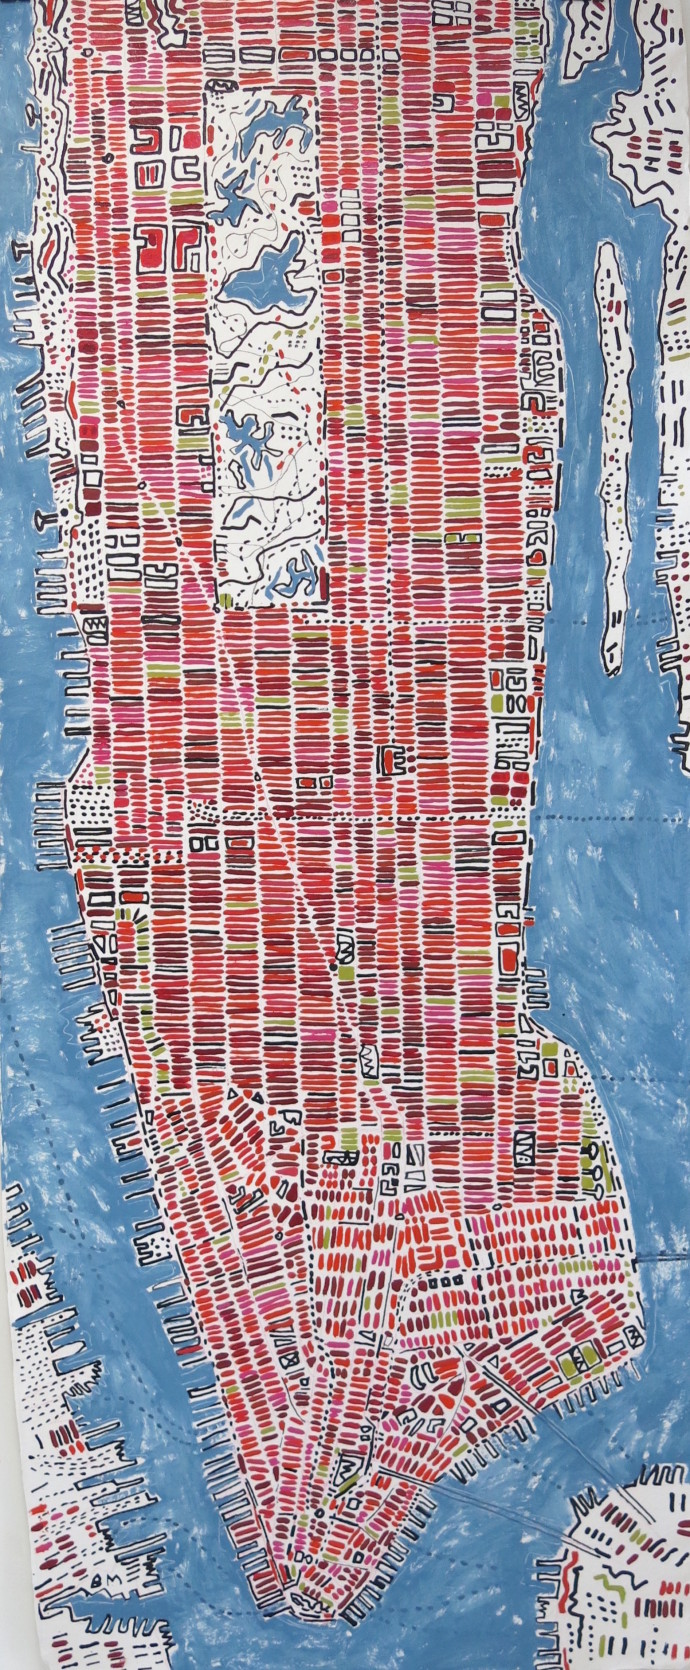 Barbara Macfarlane, Long Manhattan Rosehip, 2017